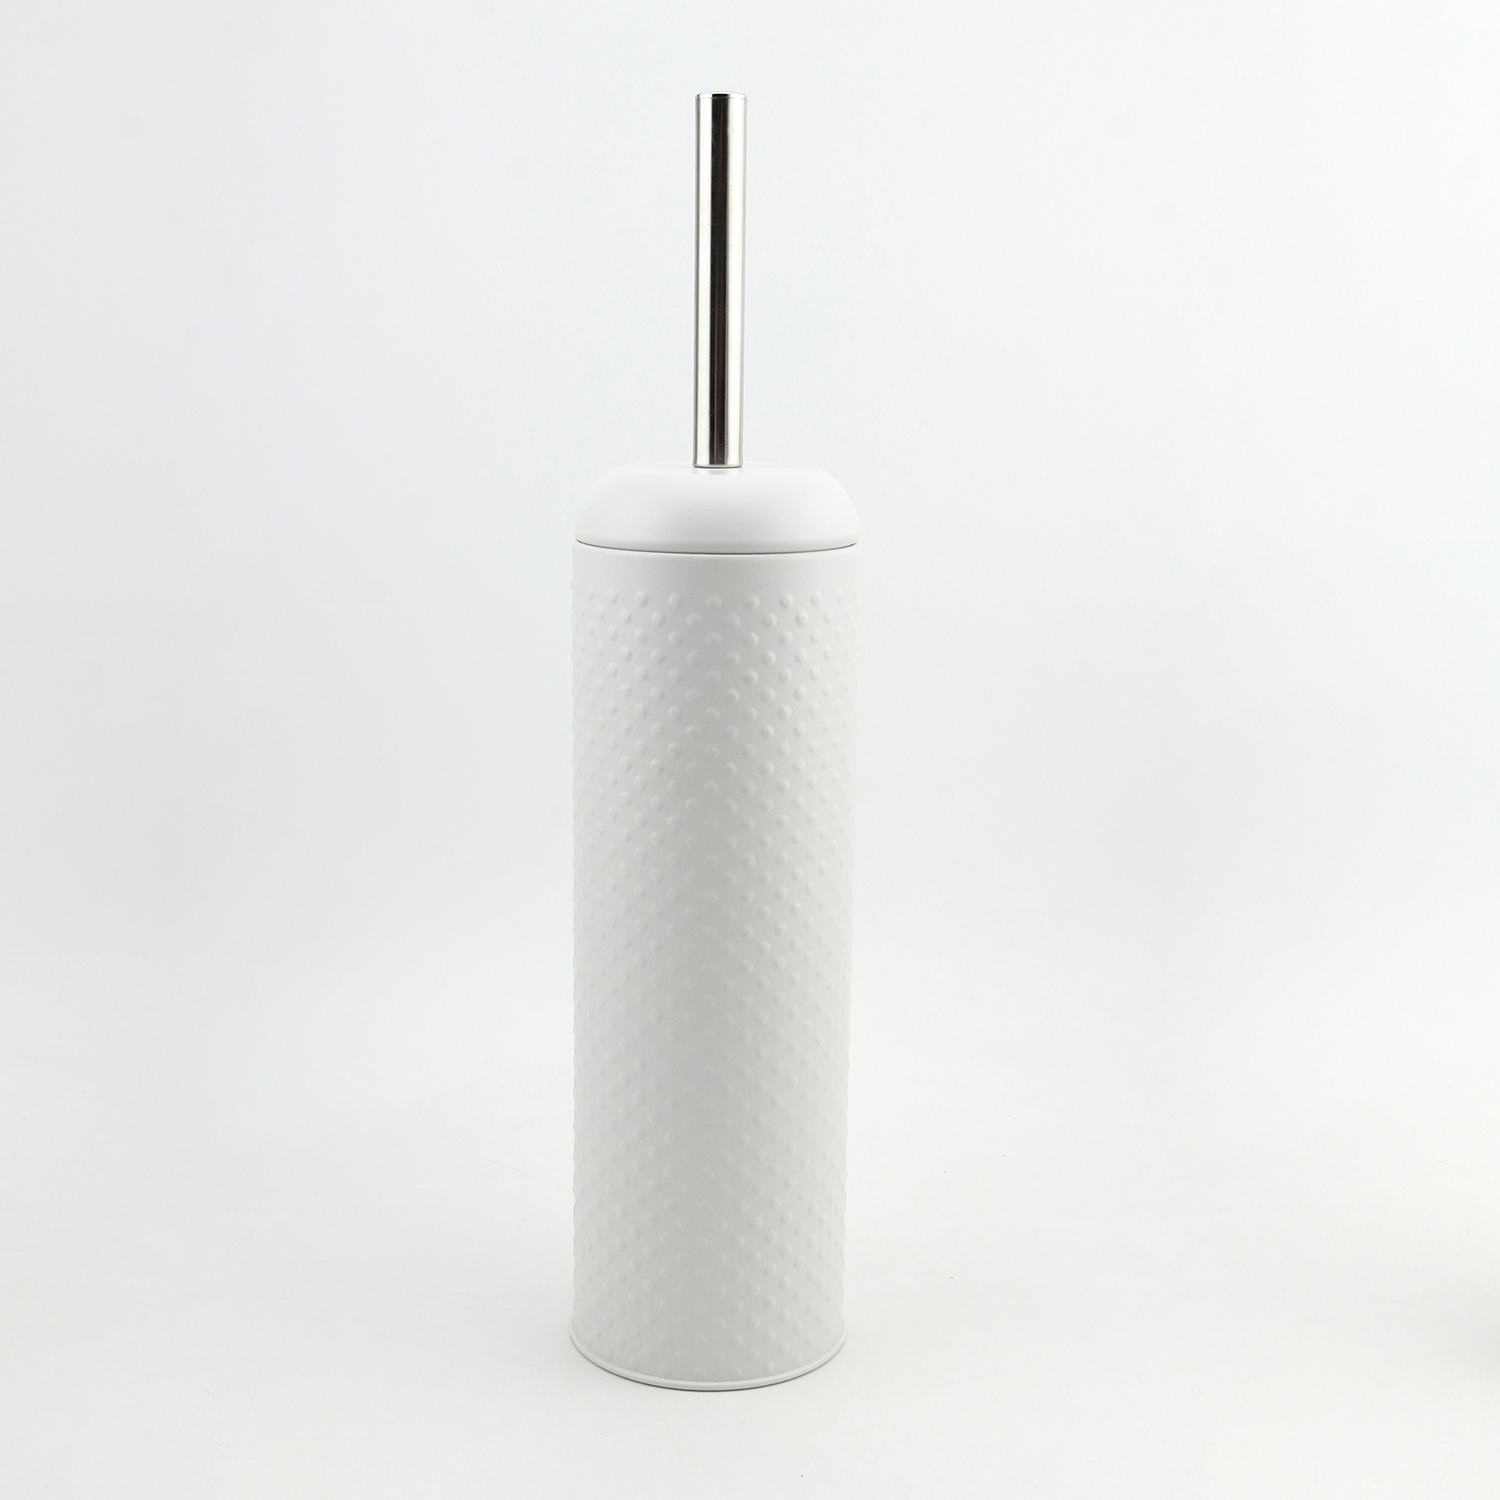 Hammered White Toilet Brush